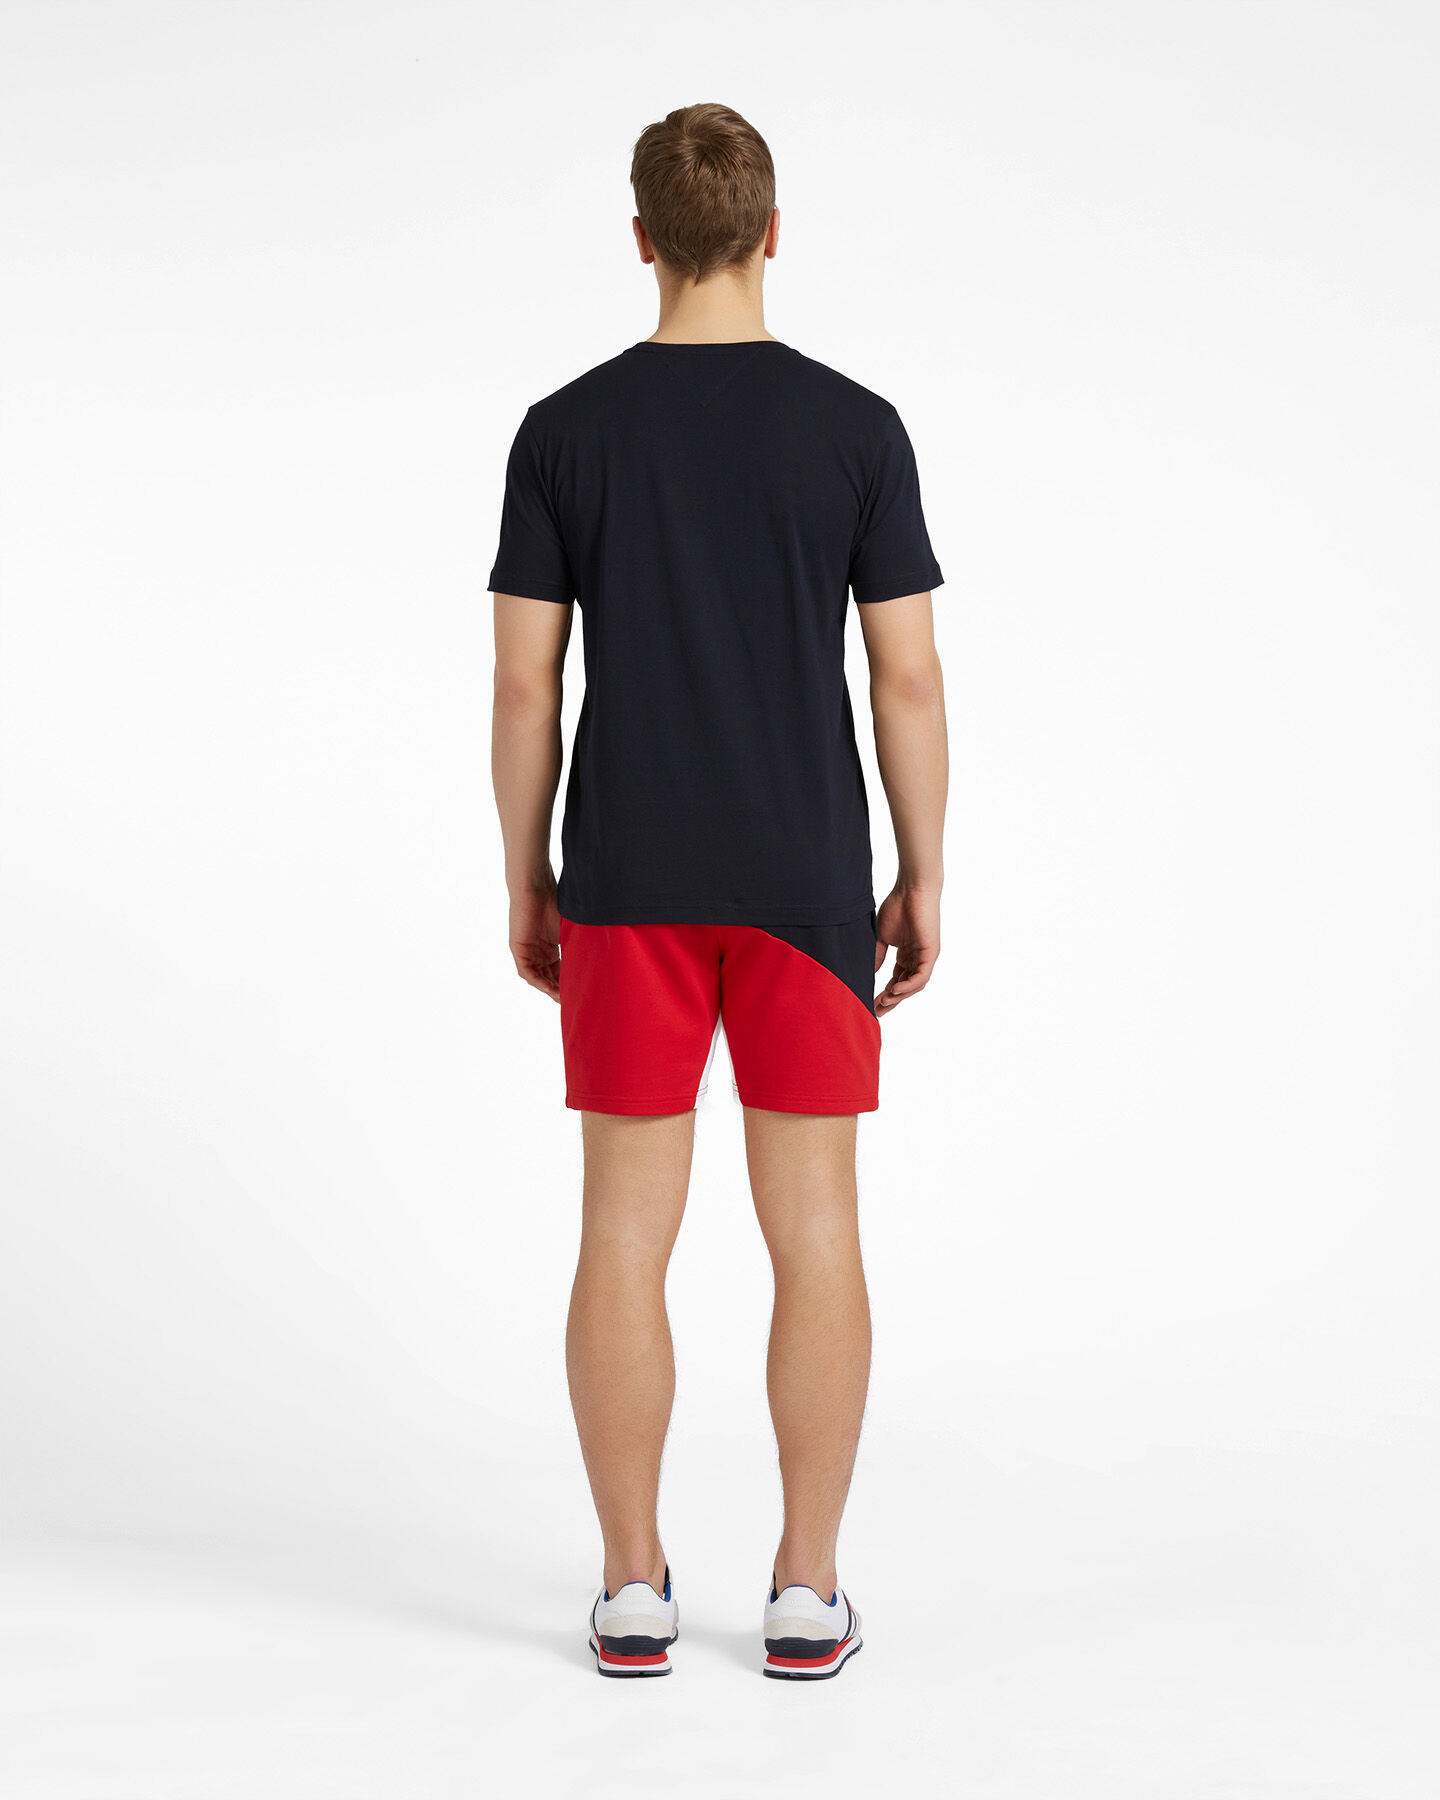 T-Shirt TOMMY HILFIGER CORP SPLIT M S4089501 scatto 2